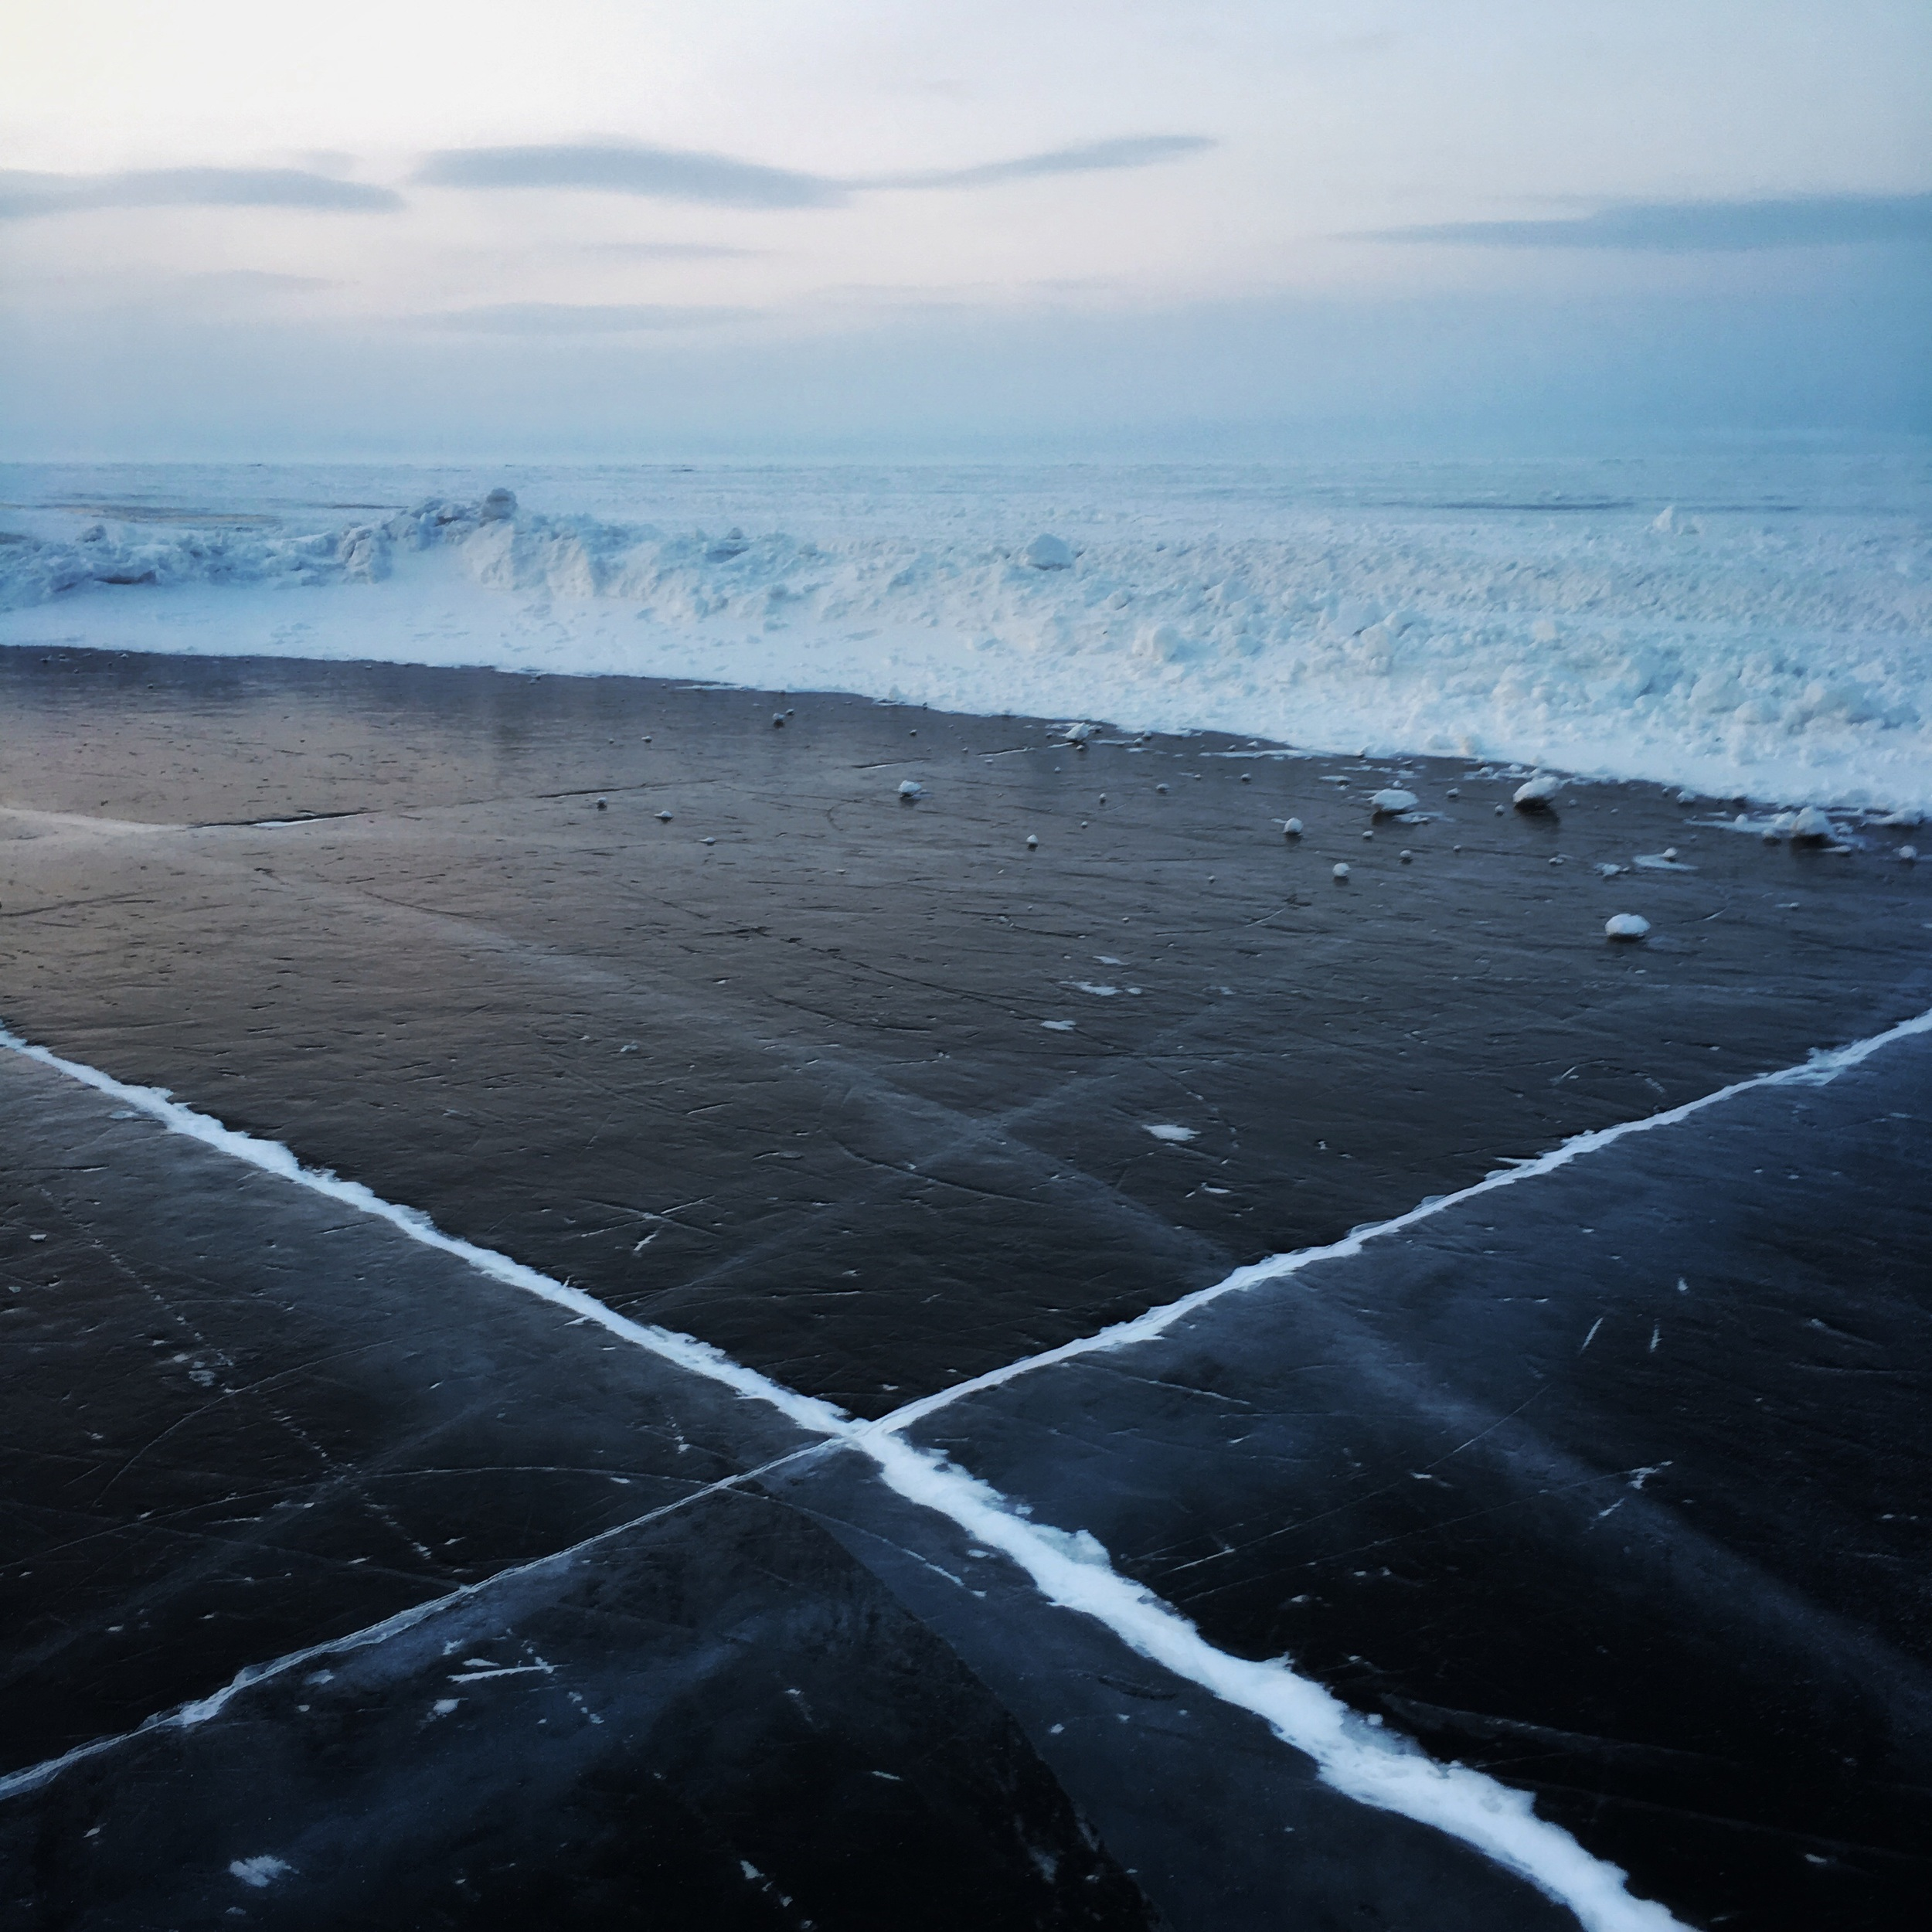 The patch of cracked ice. I feel as if I walk the water.